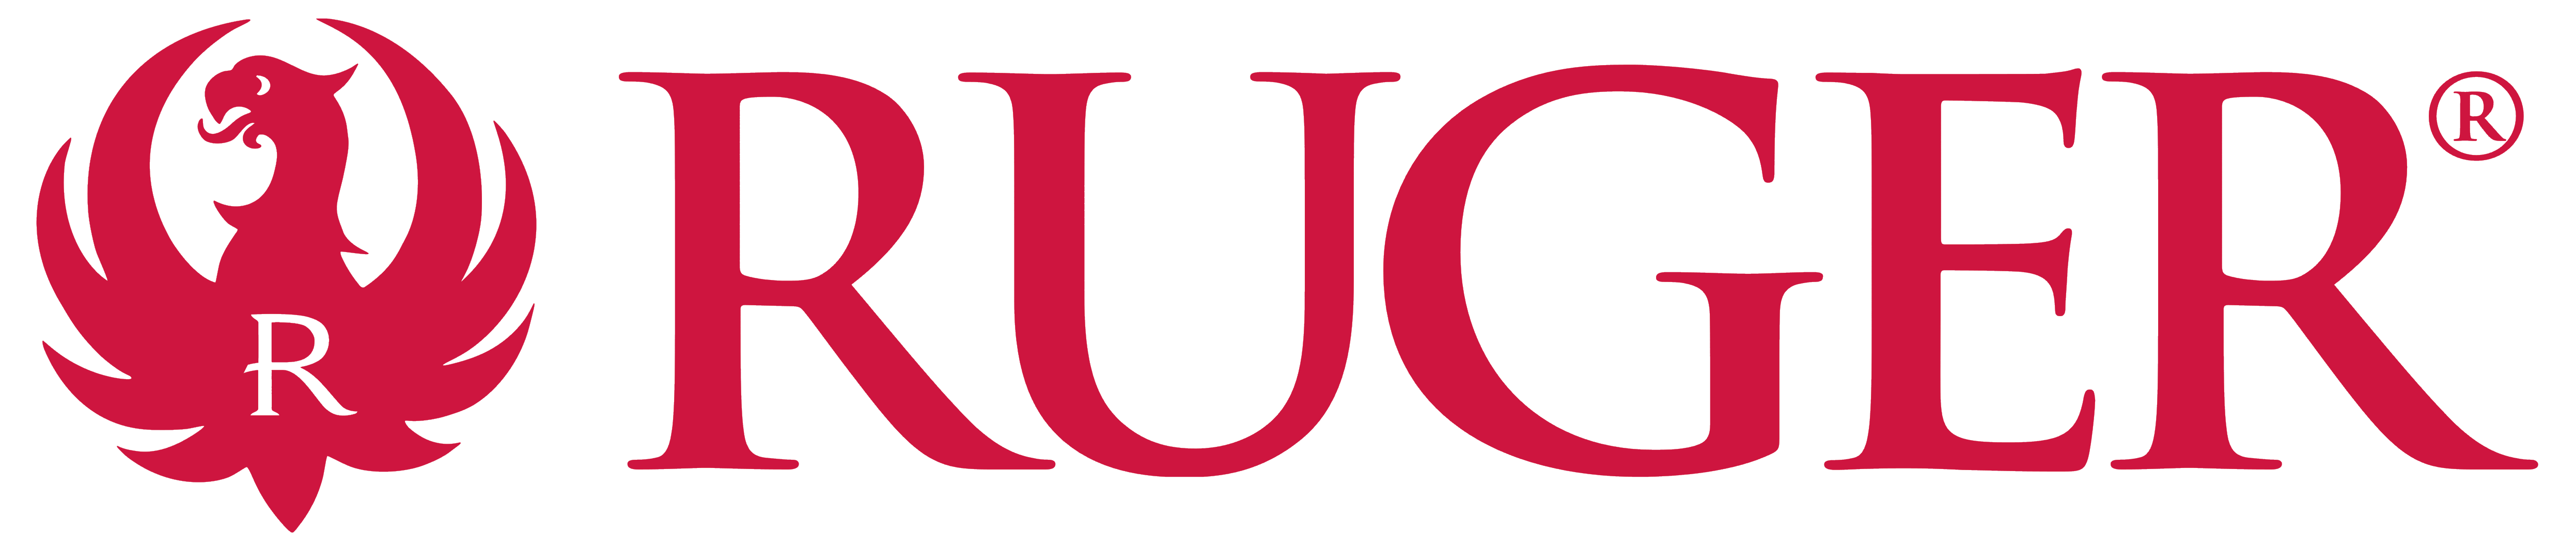 https://pacifictradinggroupllc.com/wp-content/uploads/2019/05/Ruger_logo.png